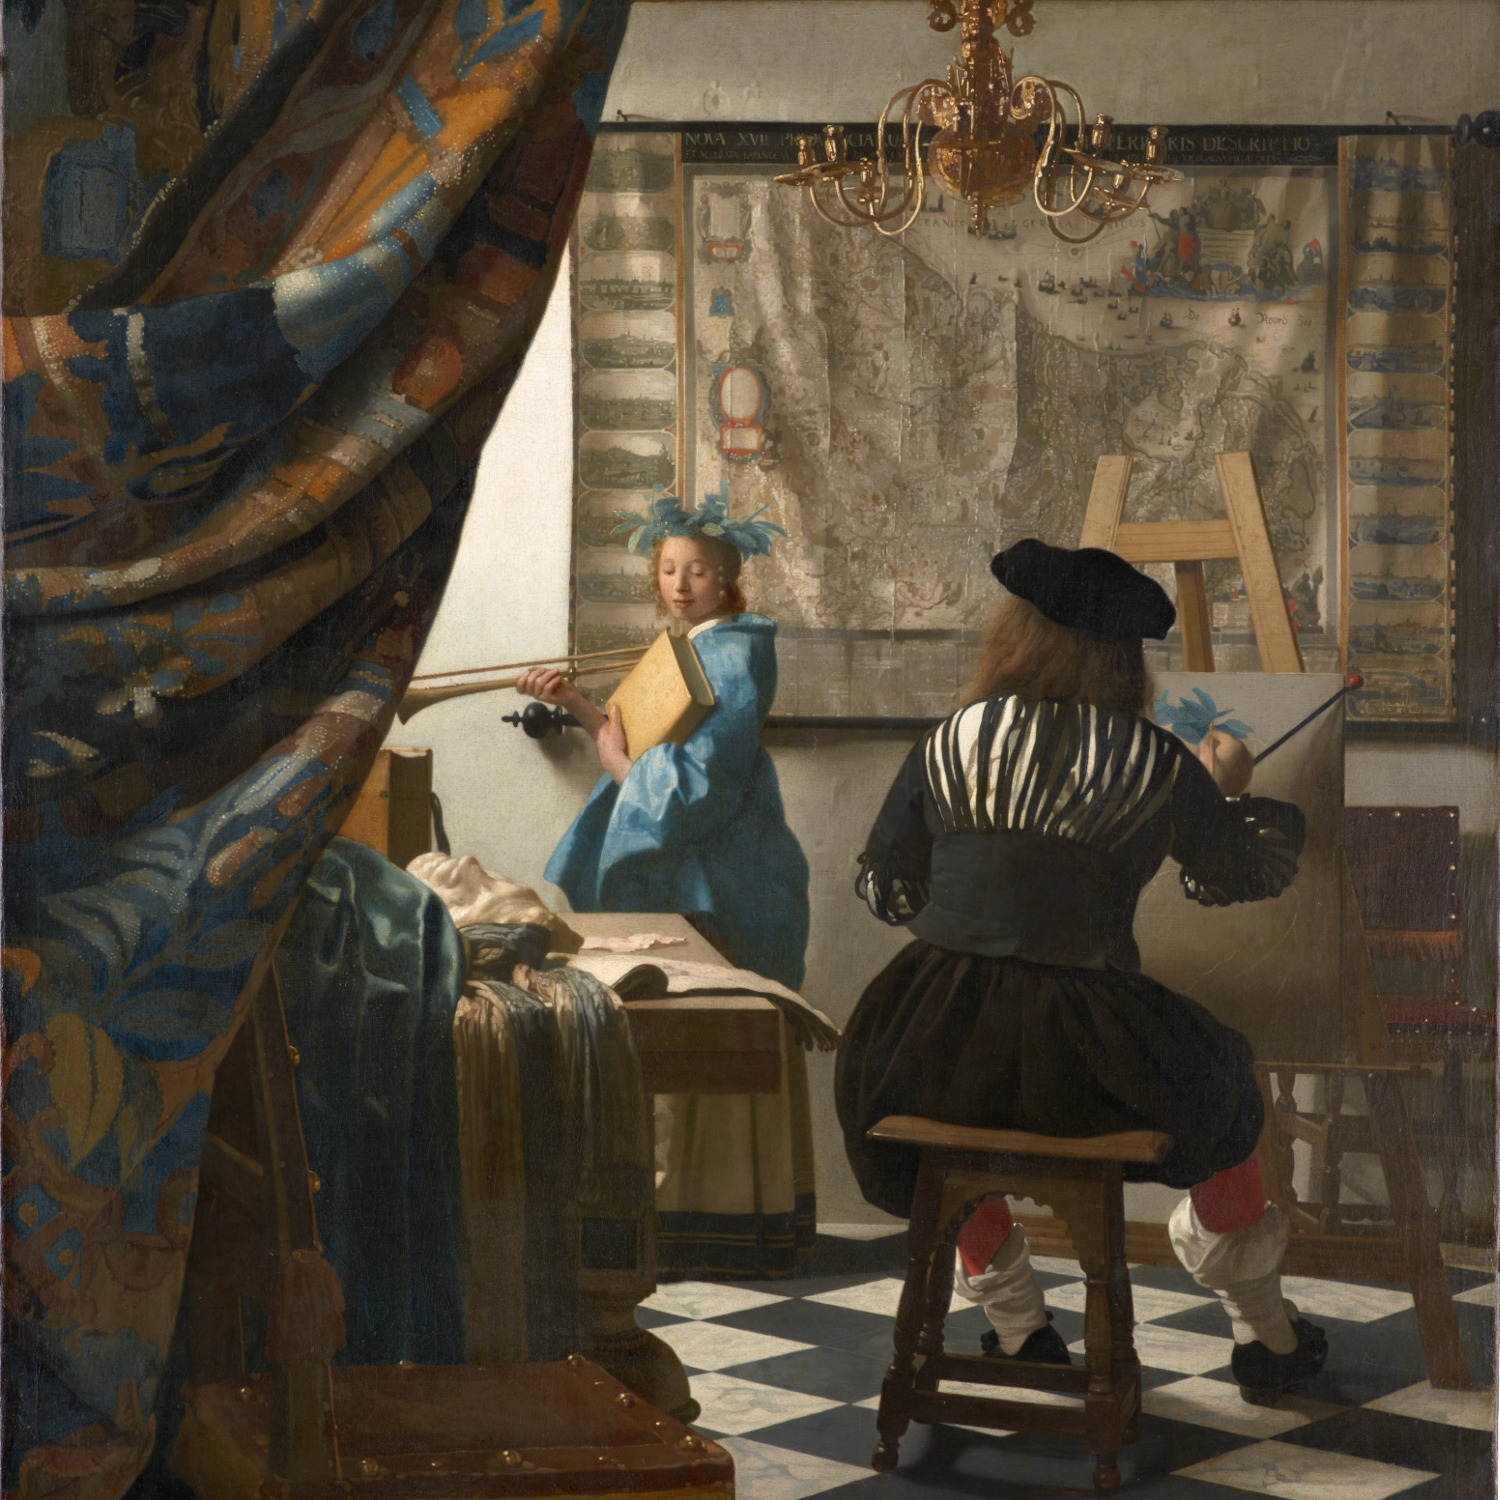 Vermeer The Art of Painting 1500x1500.jpg